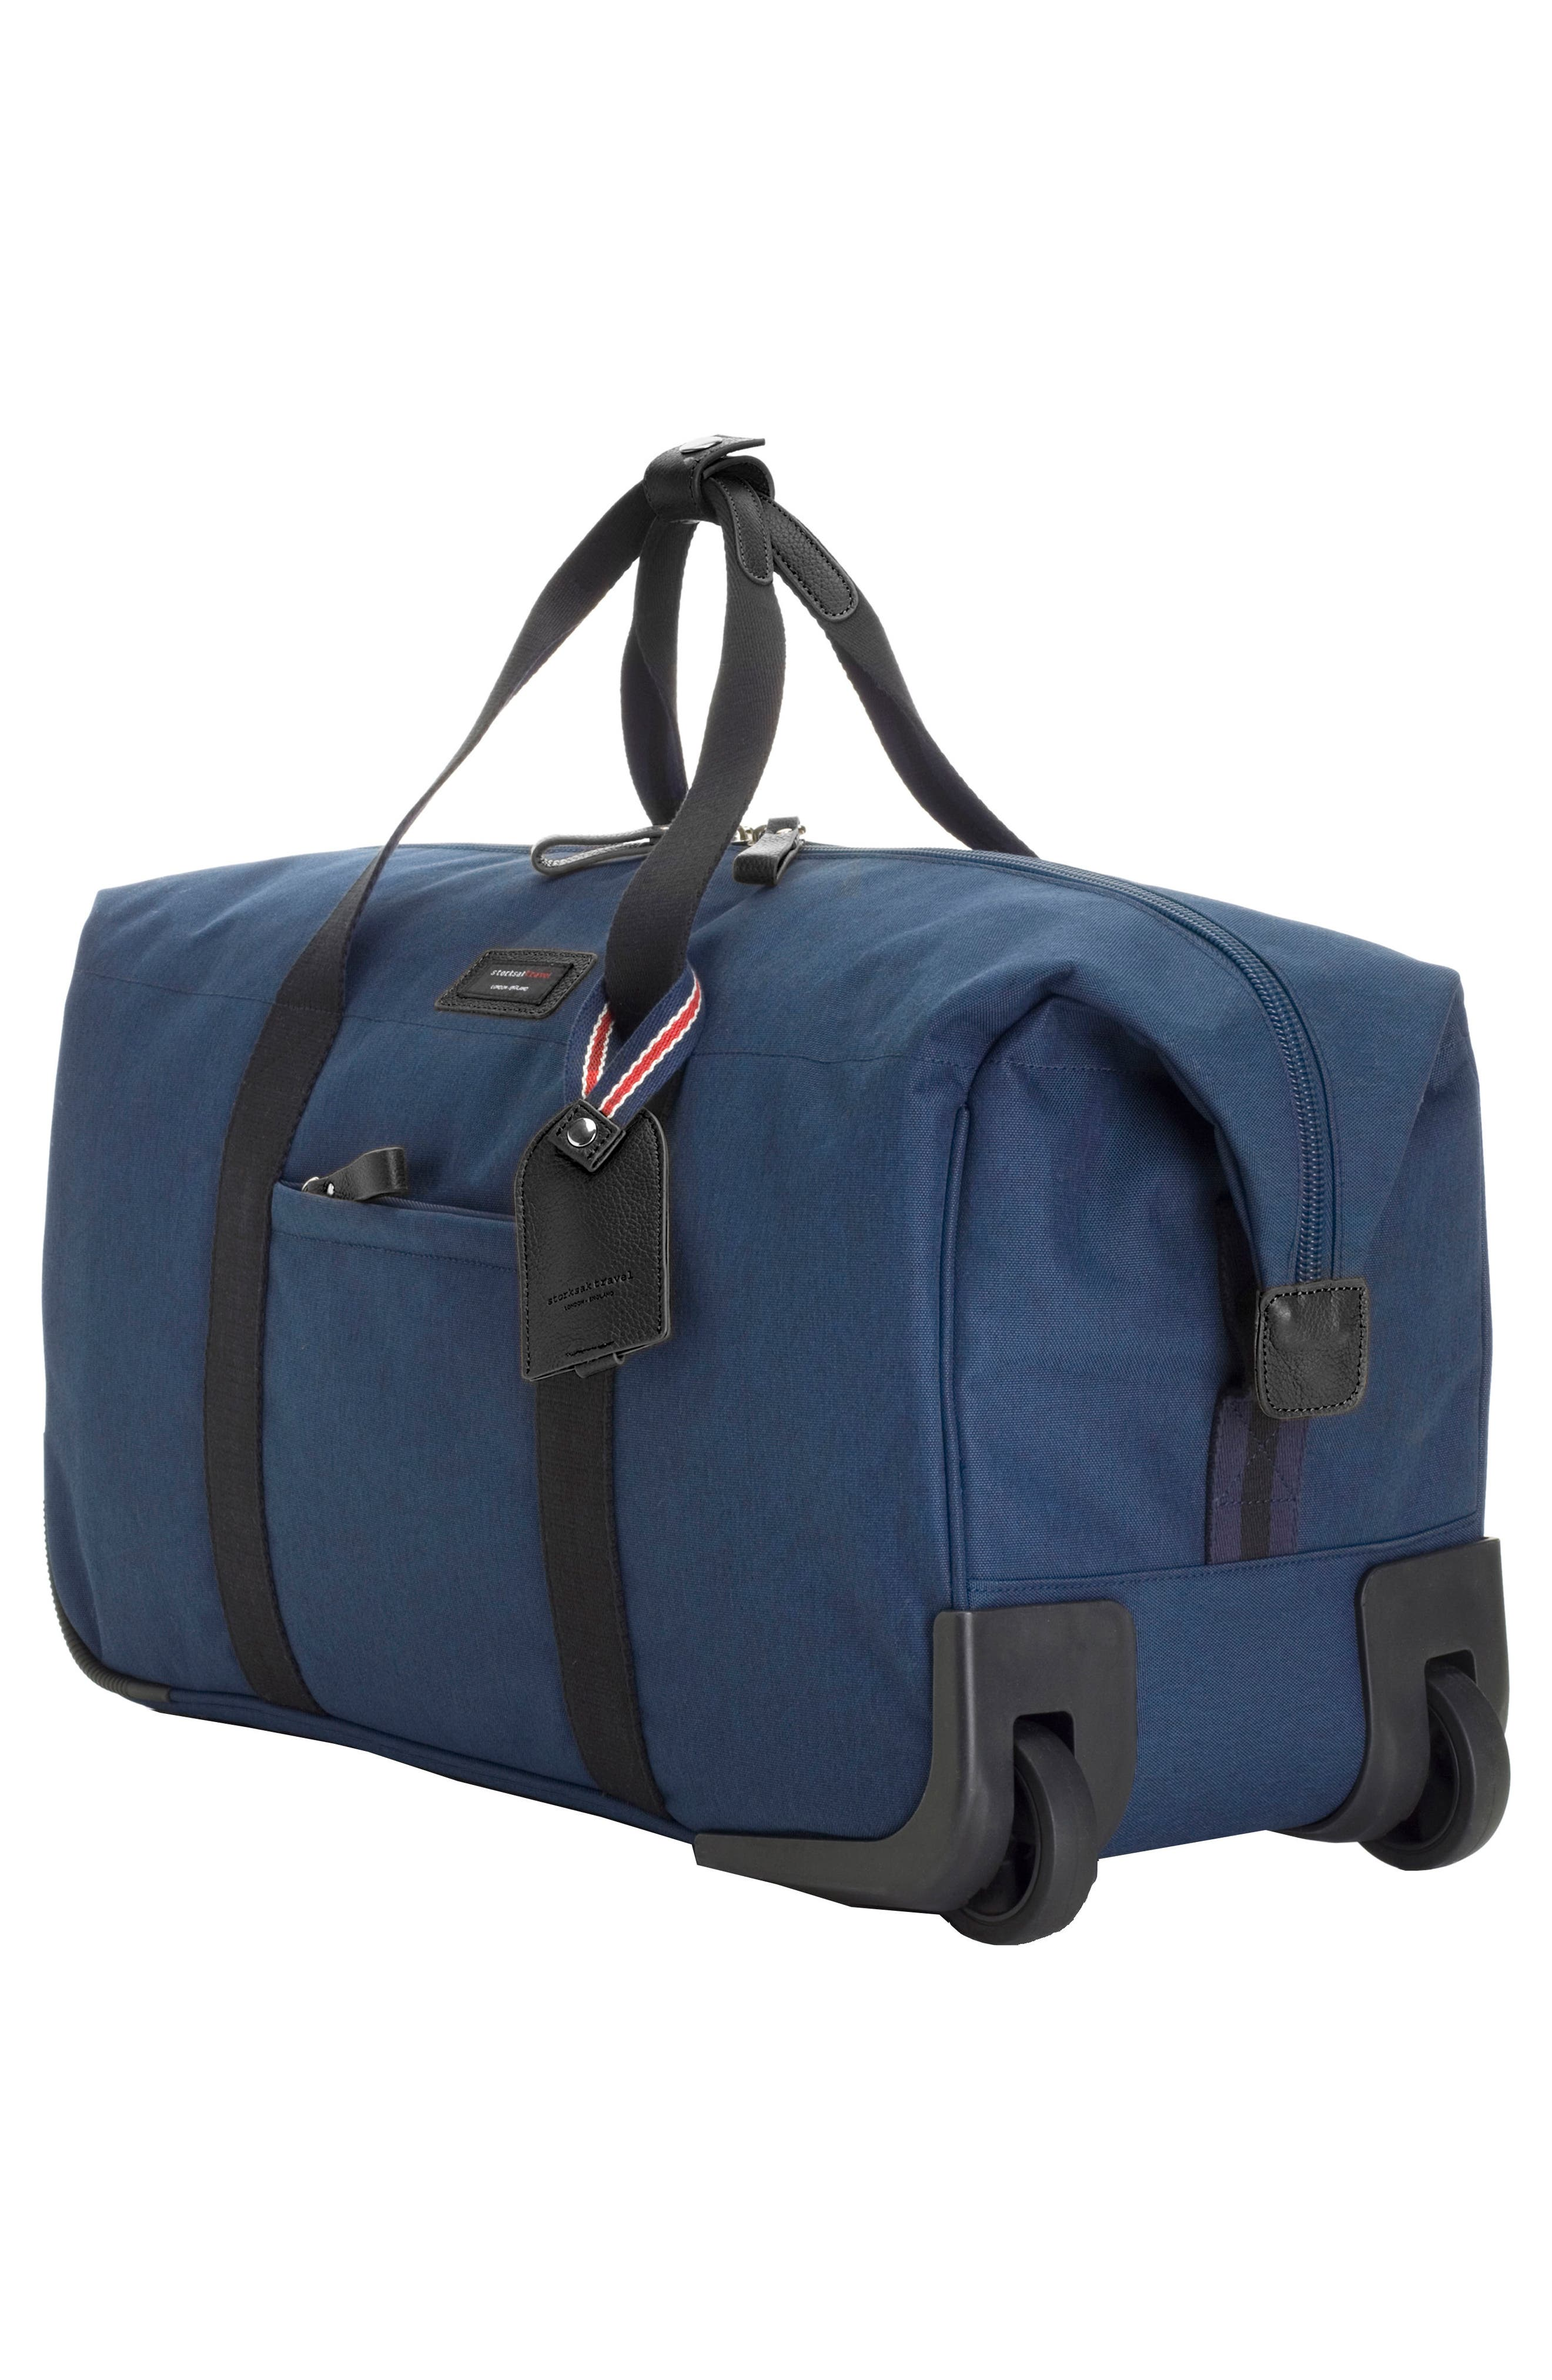 Cabin Wheeled Carry-On with Hanging Organizer,                             Alternate thumbnail 3, color,                             Navy